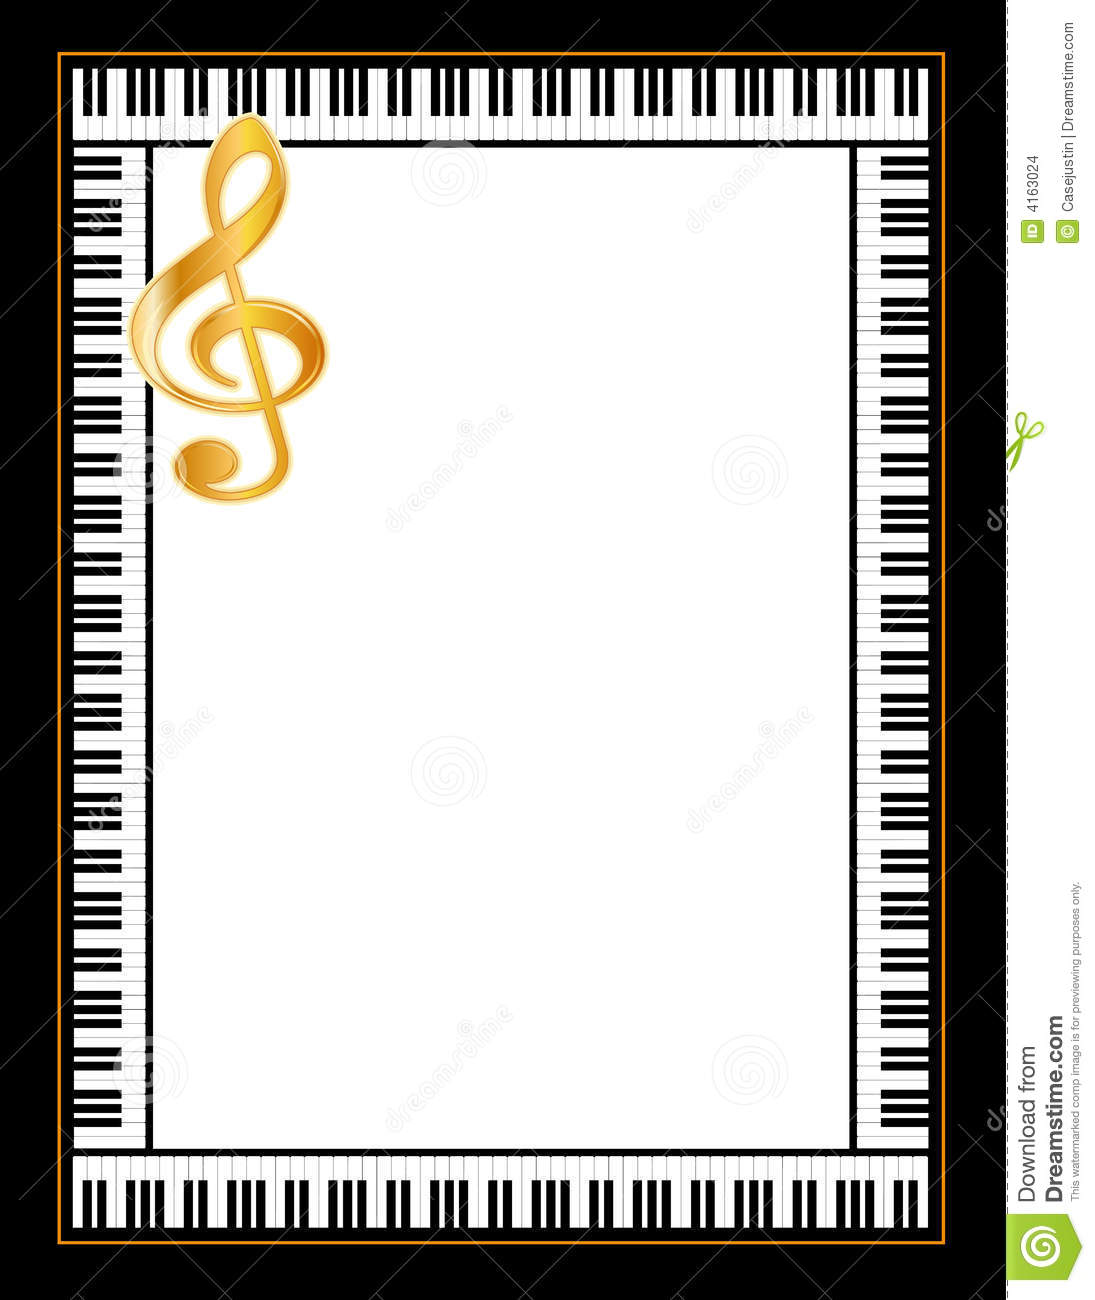 Ebony And Ivory Piano Poster Gold Clef Stock Images